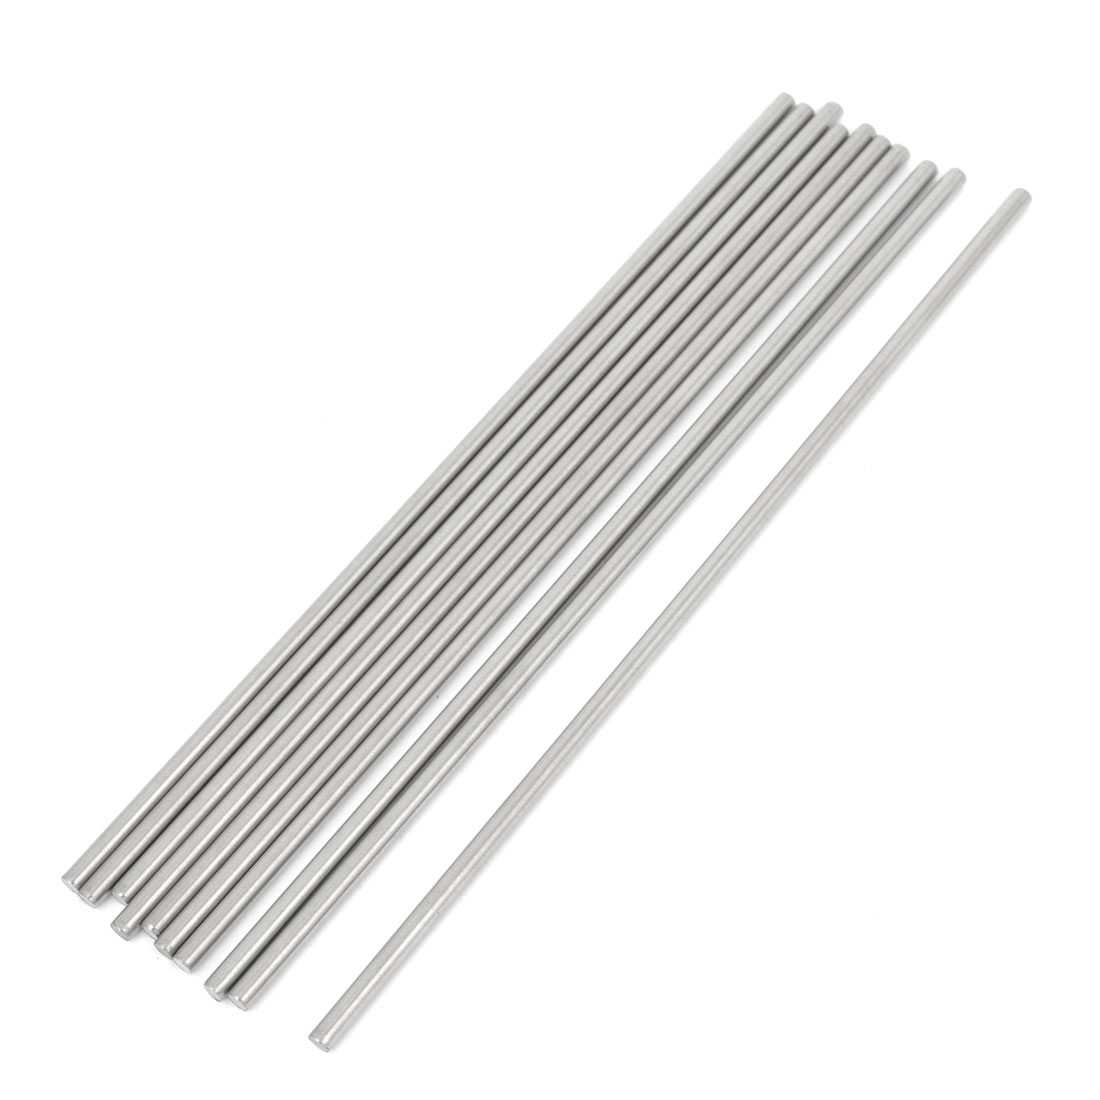 10 Pcs RC Airplane Model Part Stainless Steel Round Rods Axles Bars 3mm x 150mm